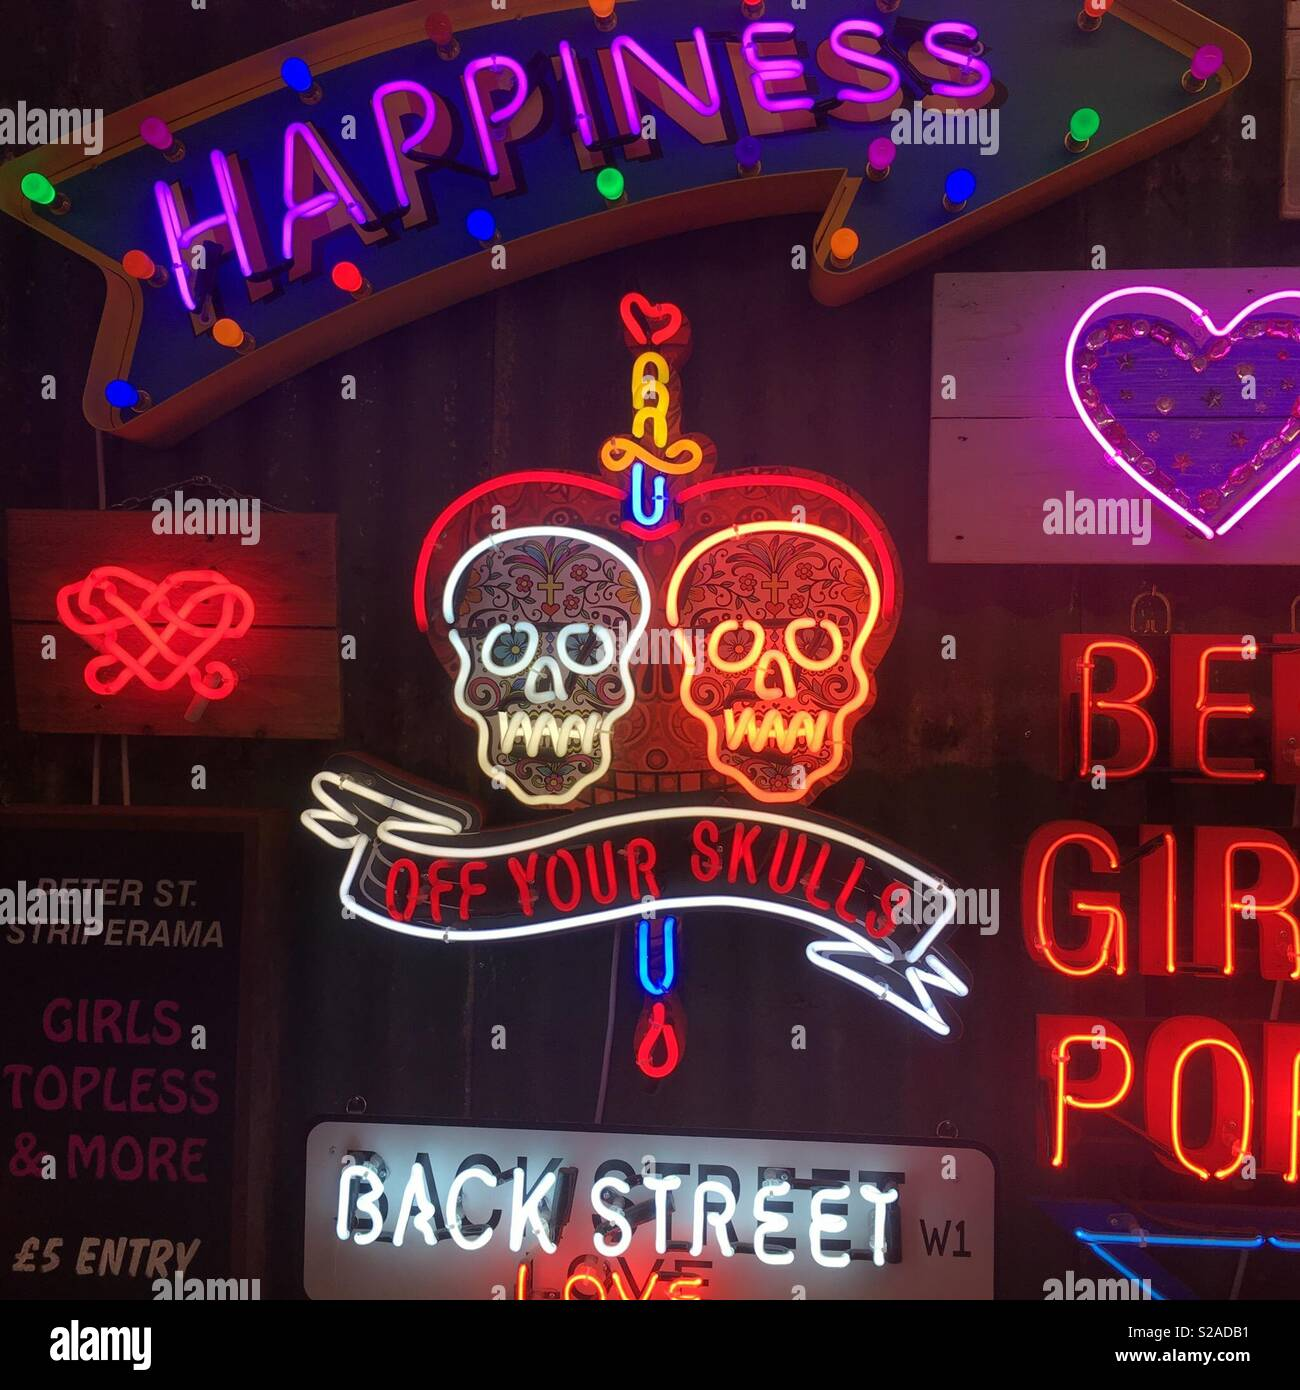 Neon signs off your skulls. - Stock Image